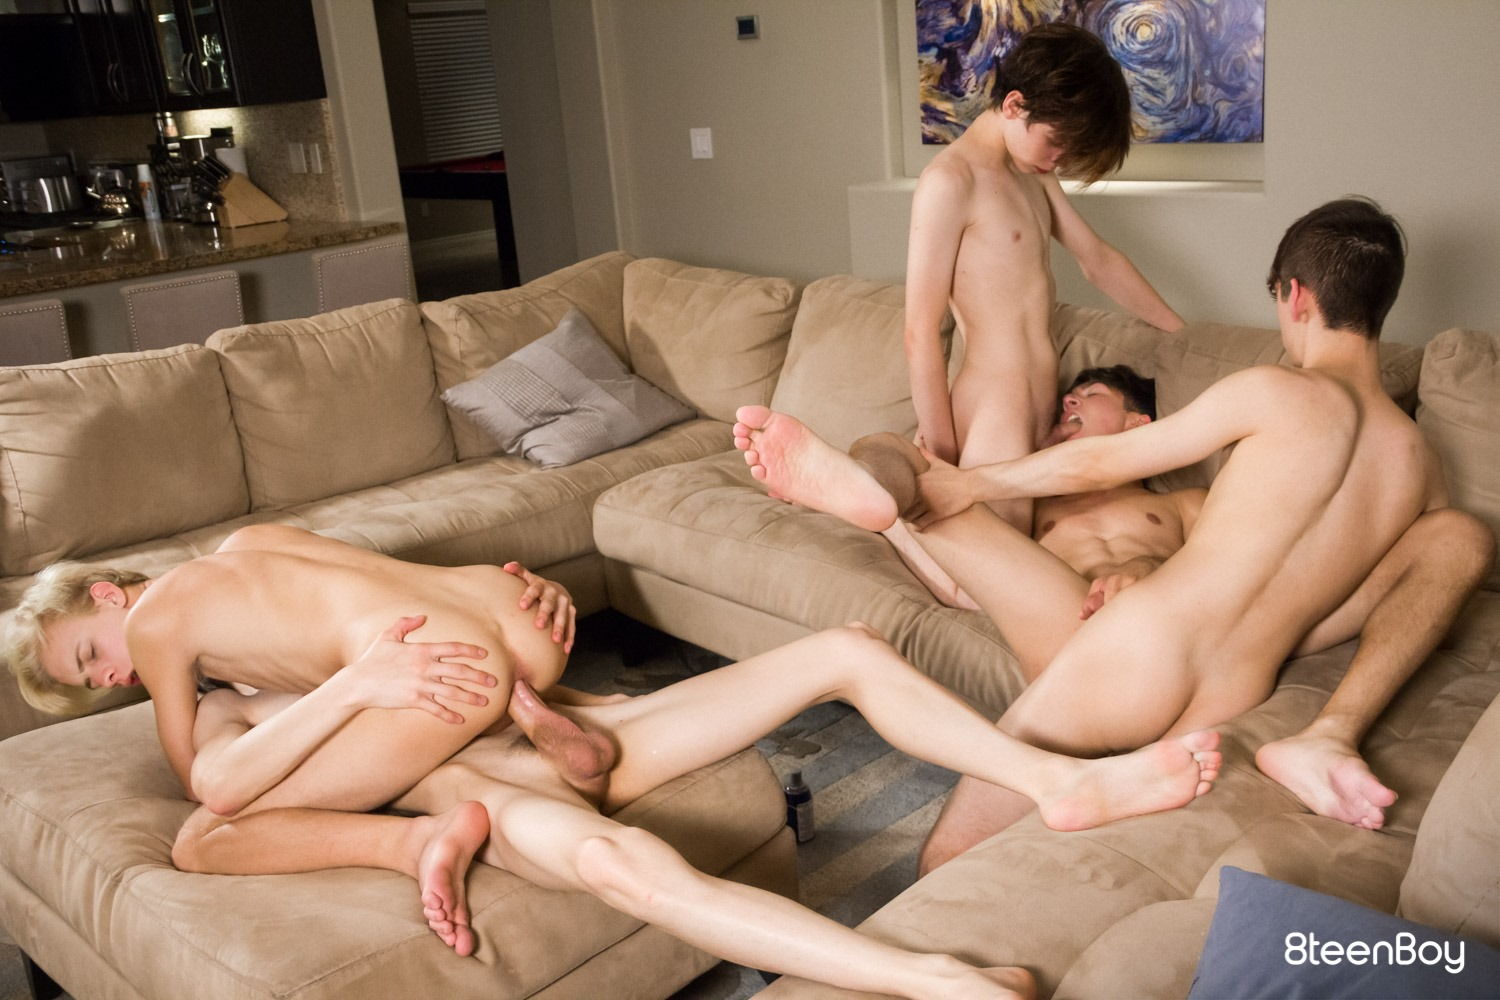 Watch This Hot Gay Teen Orgy